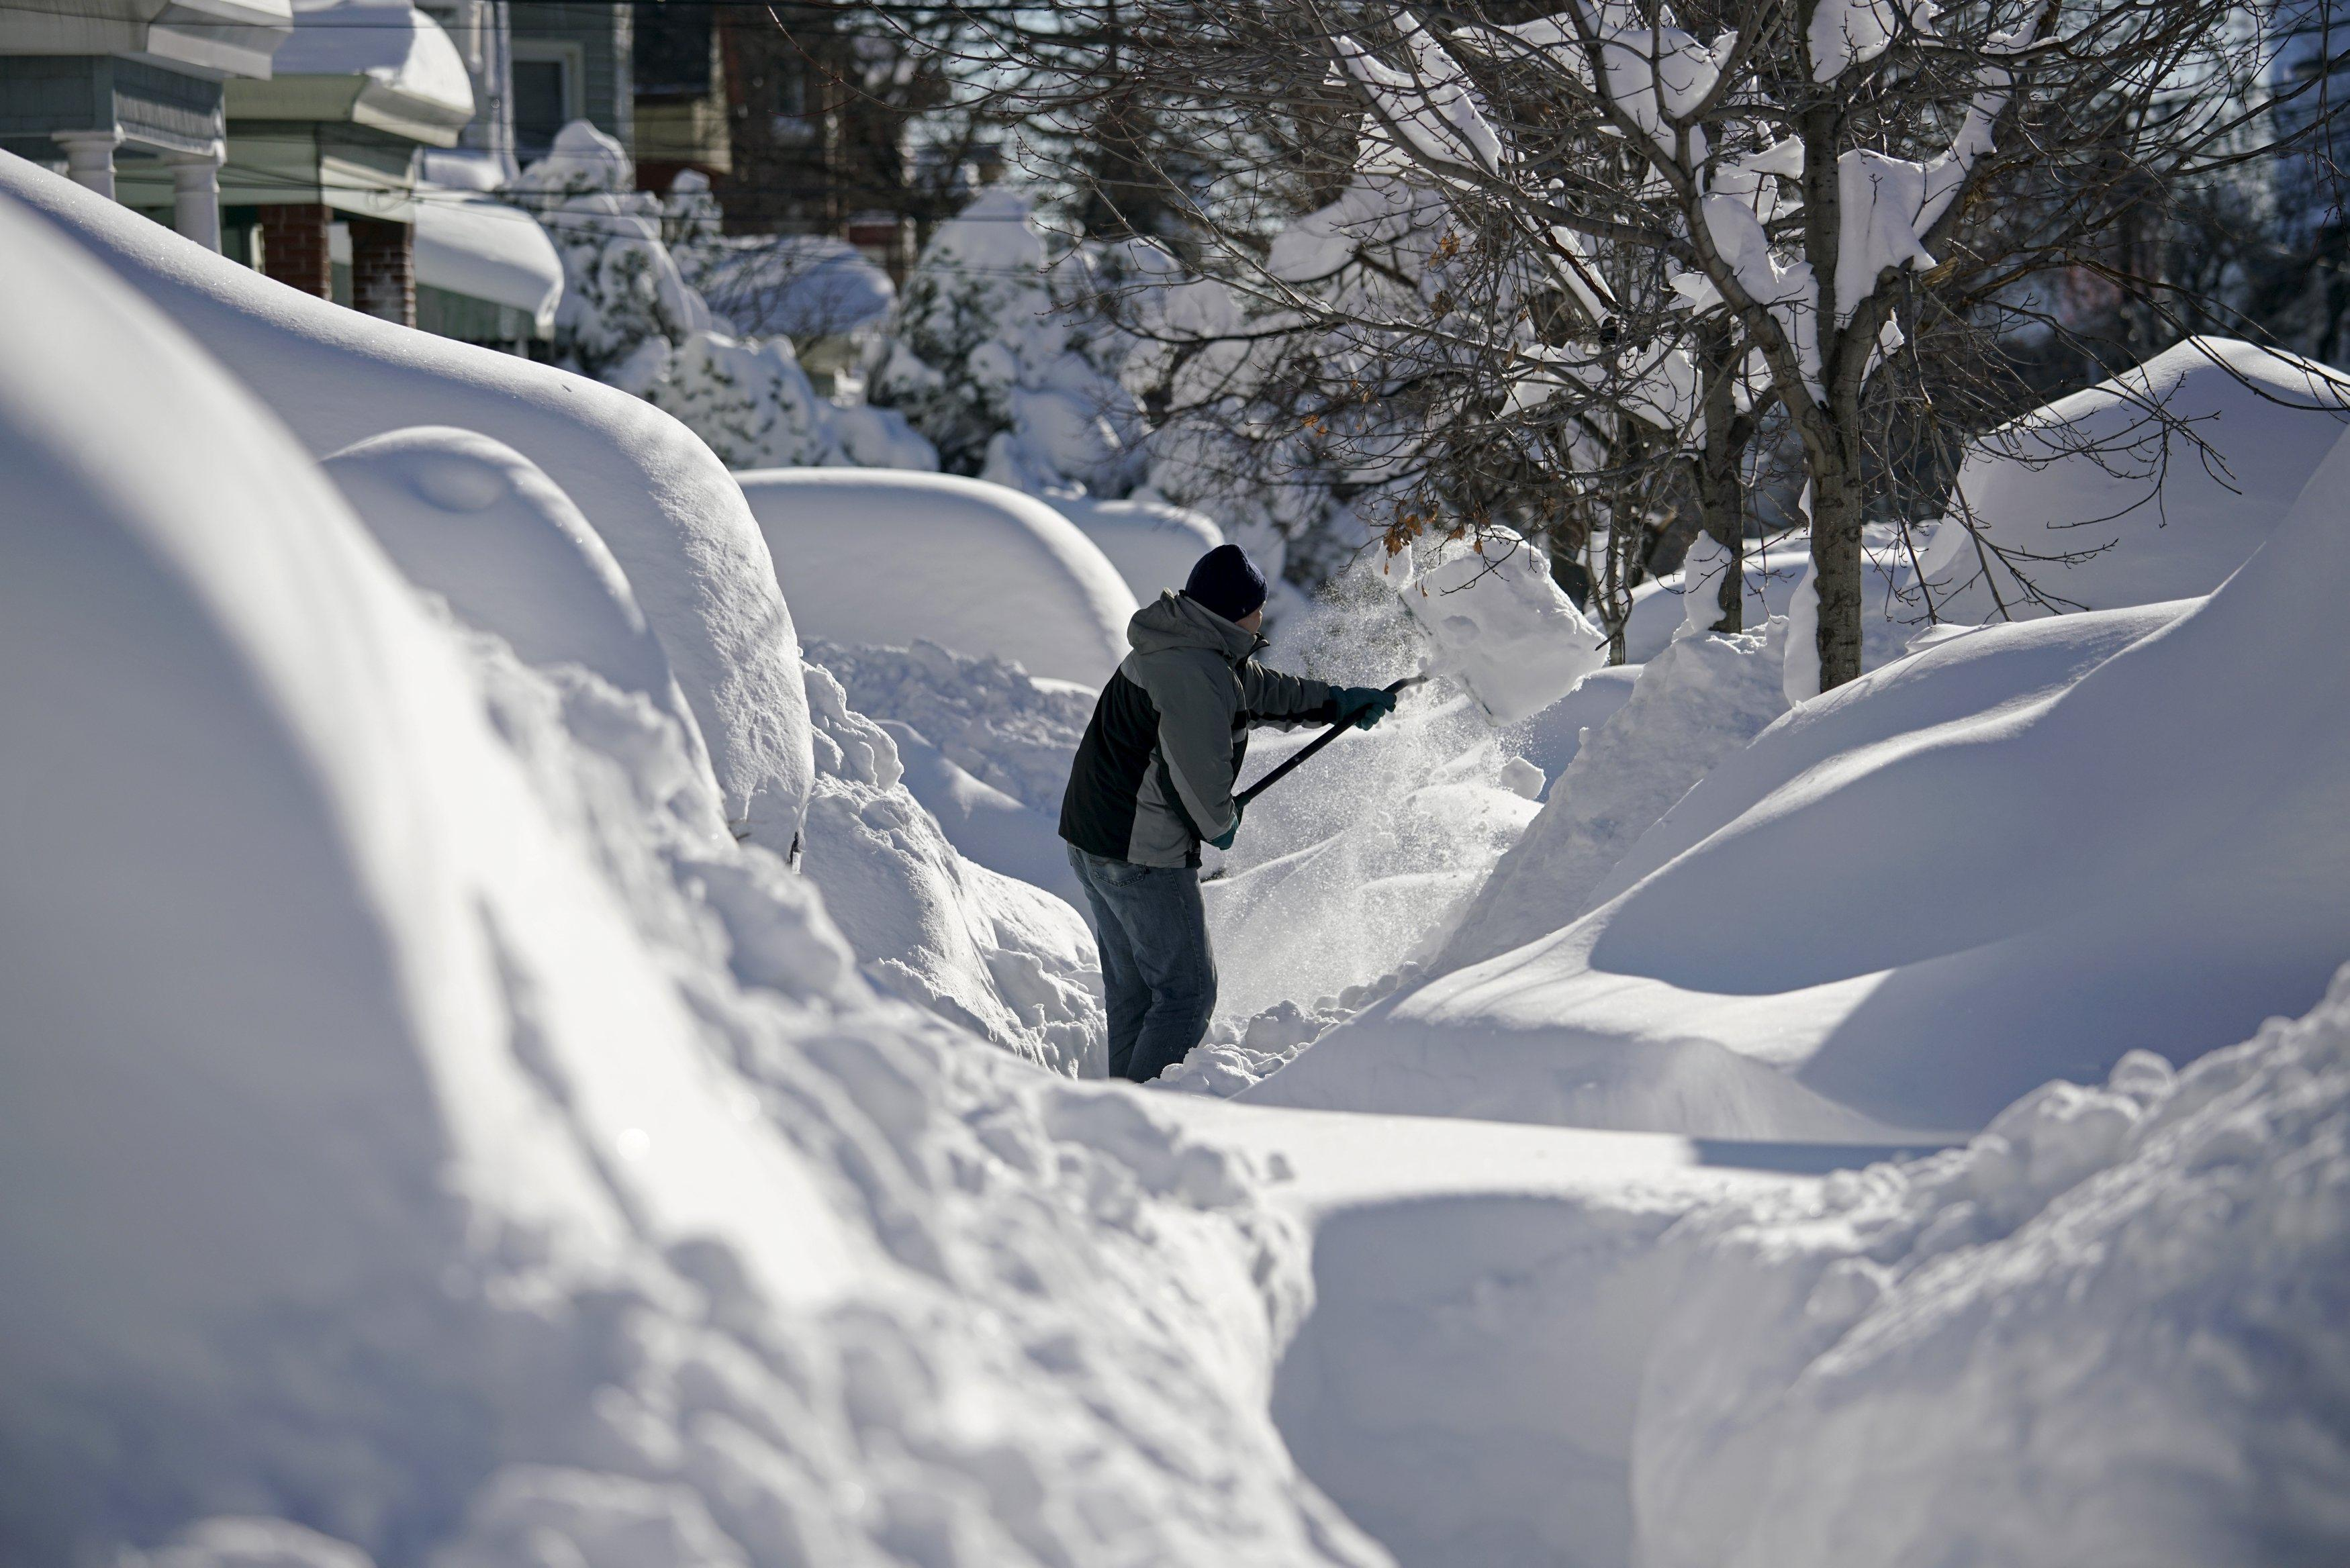 A resident shovels snow away from the entrance to his home in Union City, New Jersey, across the Hudson River from Midtown Manhattan, after the second-biggest winter storm in New York history, January 24, 2016. REUTERS/Rickey Rogers TPX IMAGES OF THE DAY